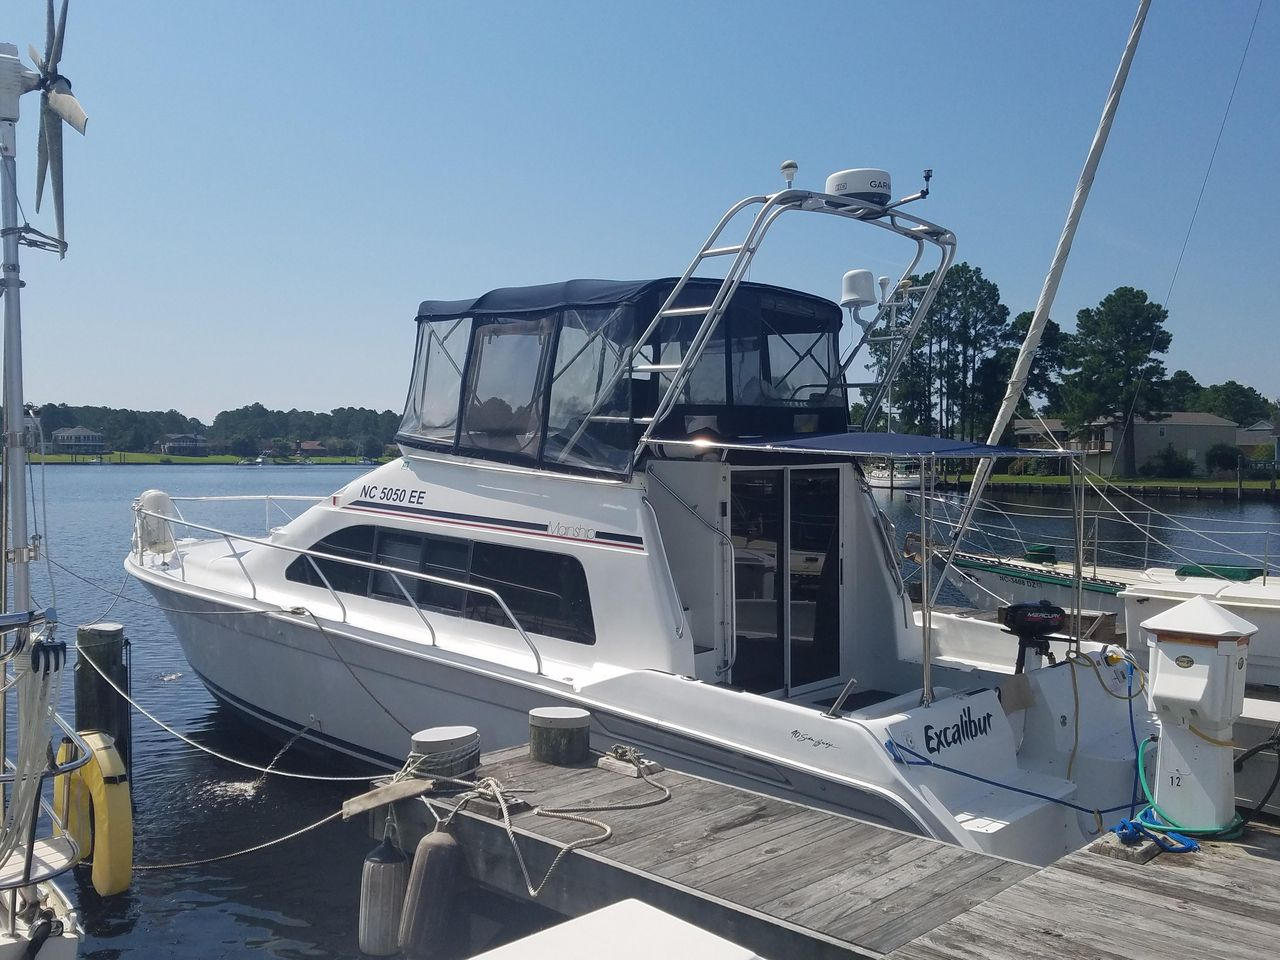 1996 Used Mainship Sedan Bridge Motor Yacht For Sale - $64,900 - New Mainship Double Cabin Boat Wiring Schematics on